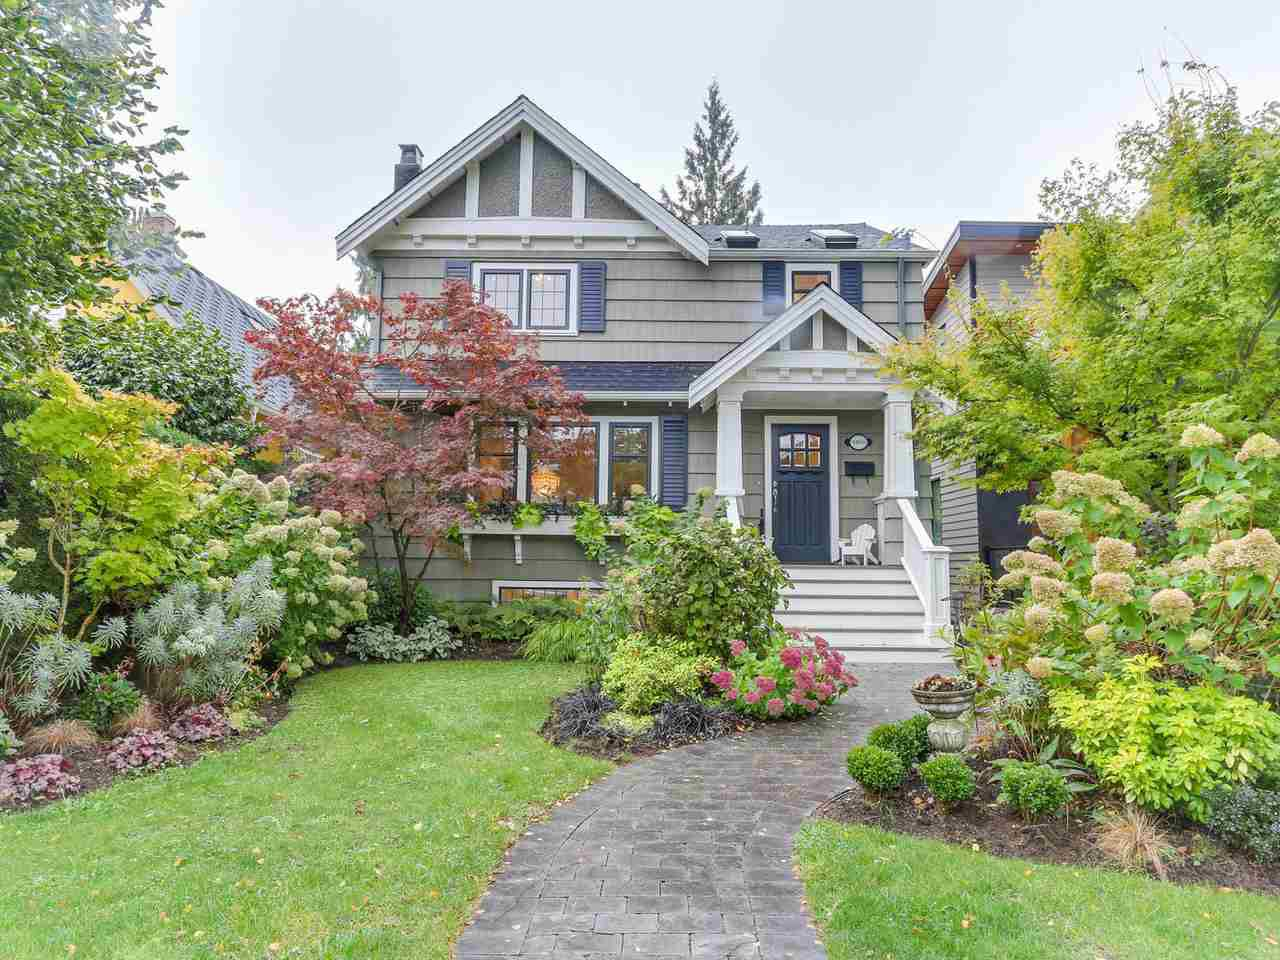 Main Photo: 4058 W 31ST Avenue in Vancouver: Dunbar House for sale (Vancouver West)  : MLS®# R2112019